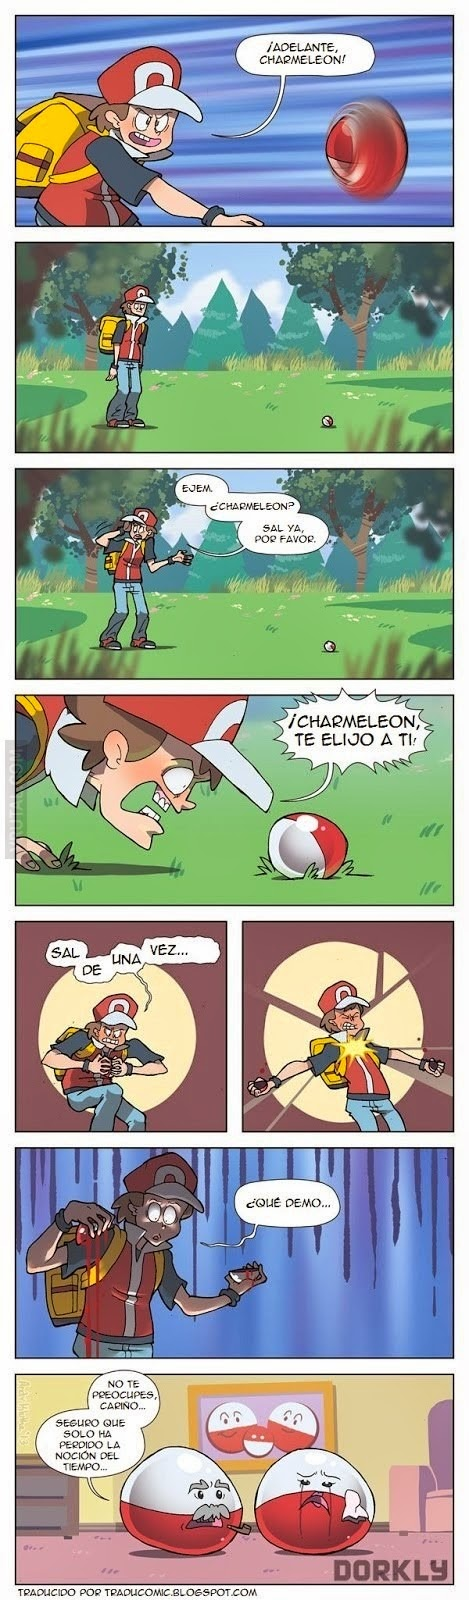 Humor Pokemon: Confundir la Pokeball...